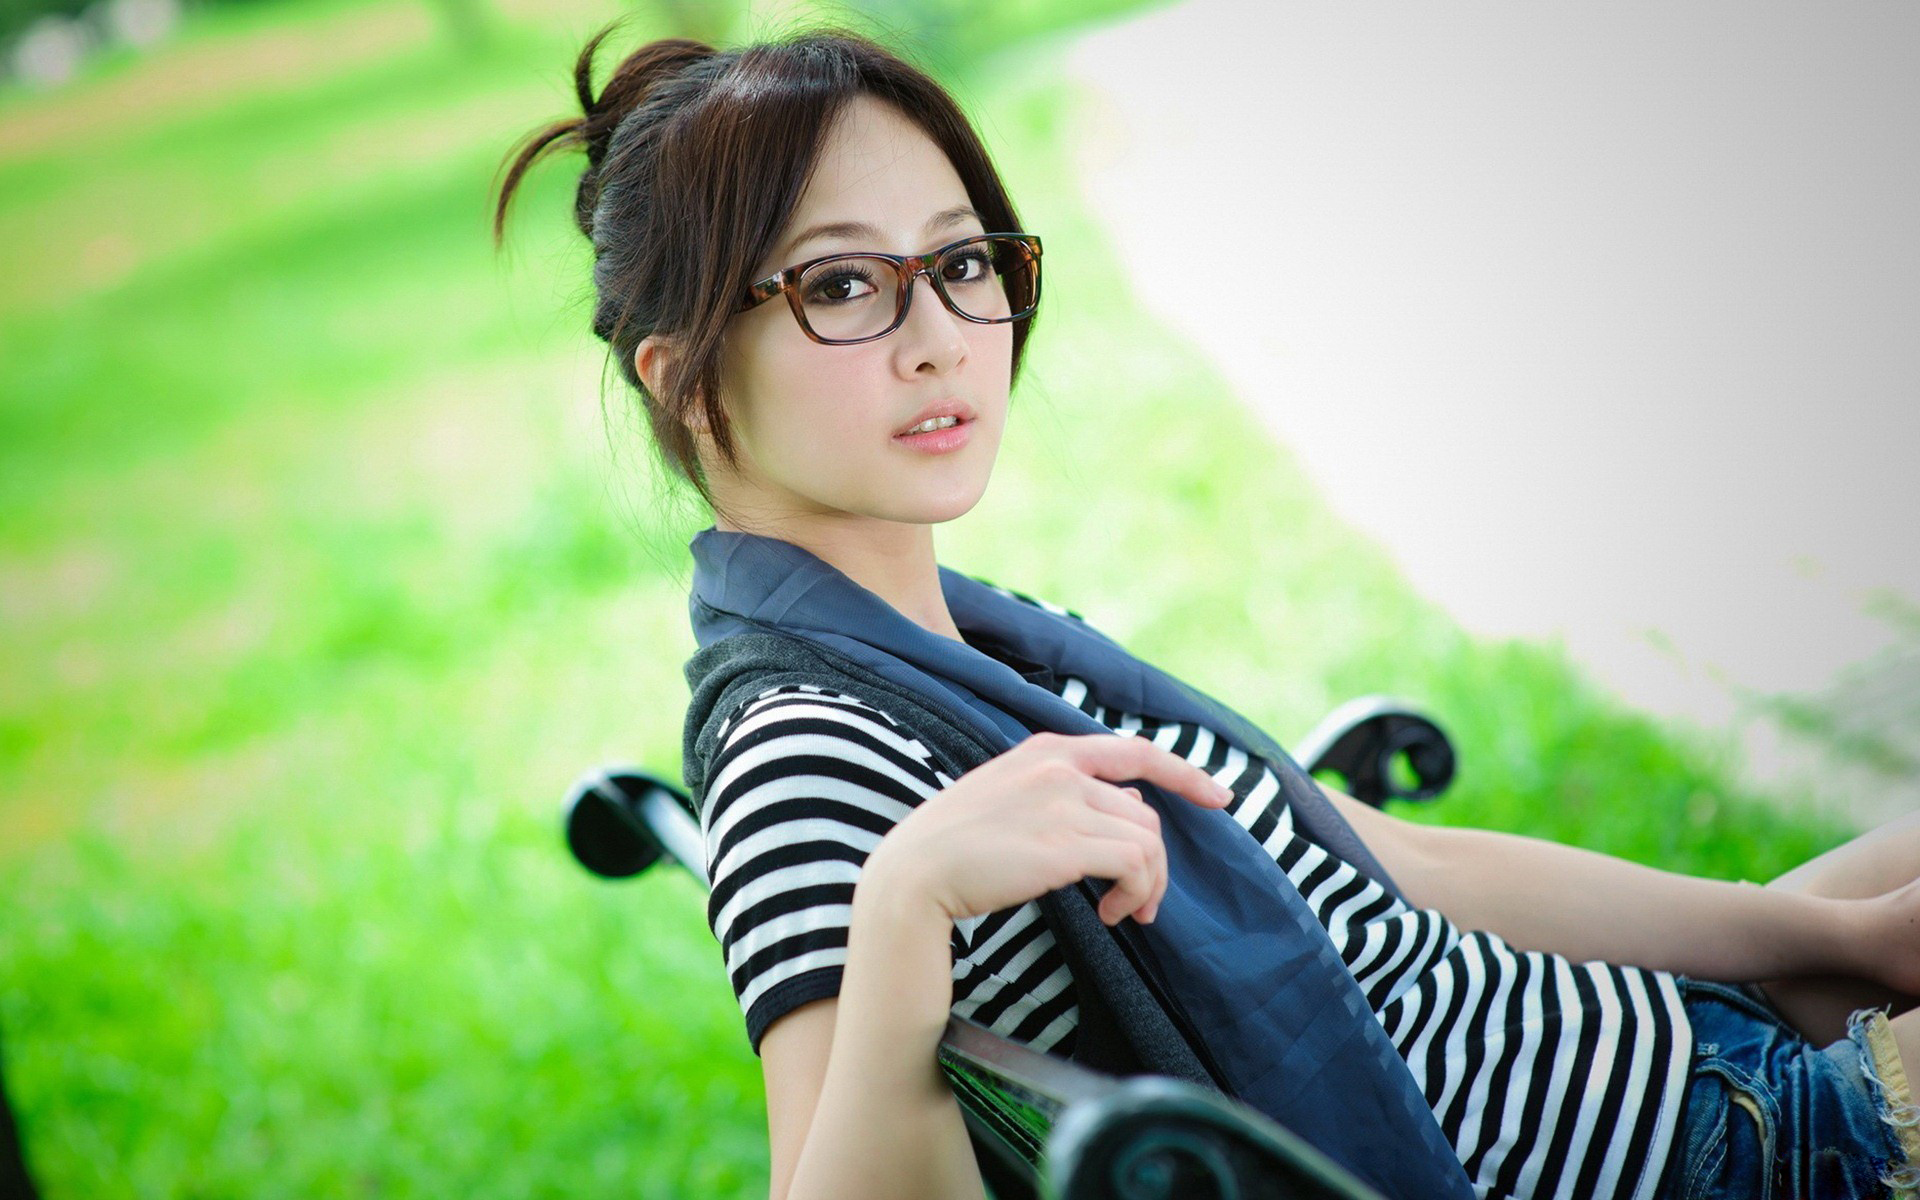 Beautiful girl wallpapers for facebook voltagebd Gallery